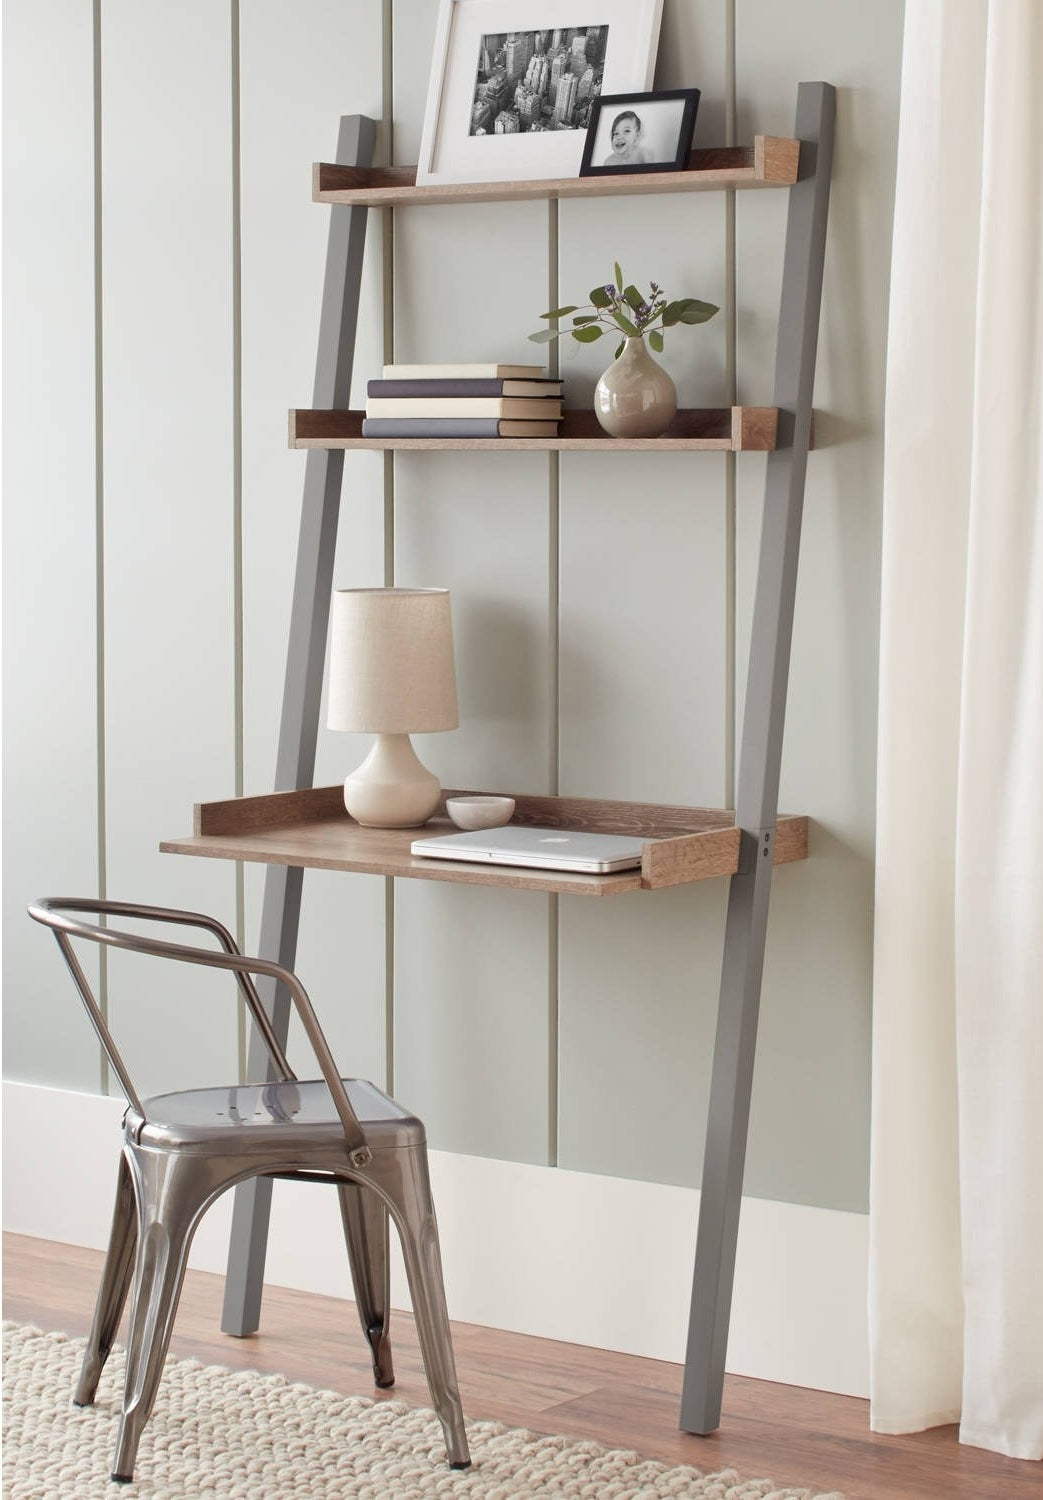 The gray leaning desk positioned against a wall in a home office